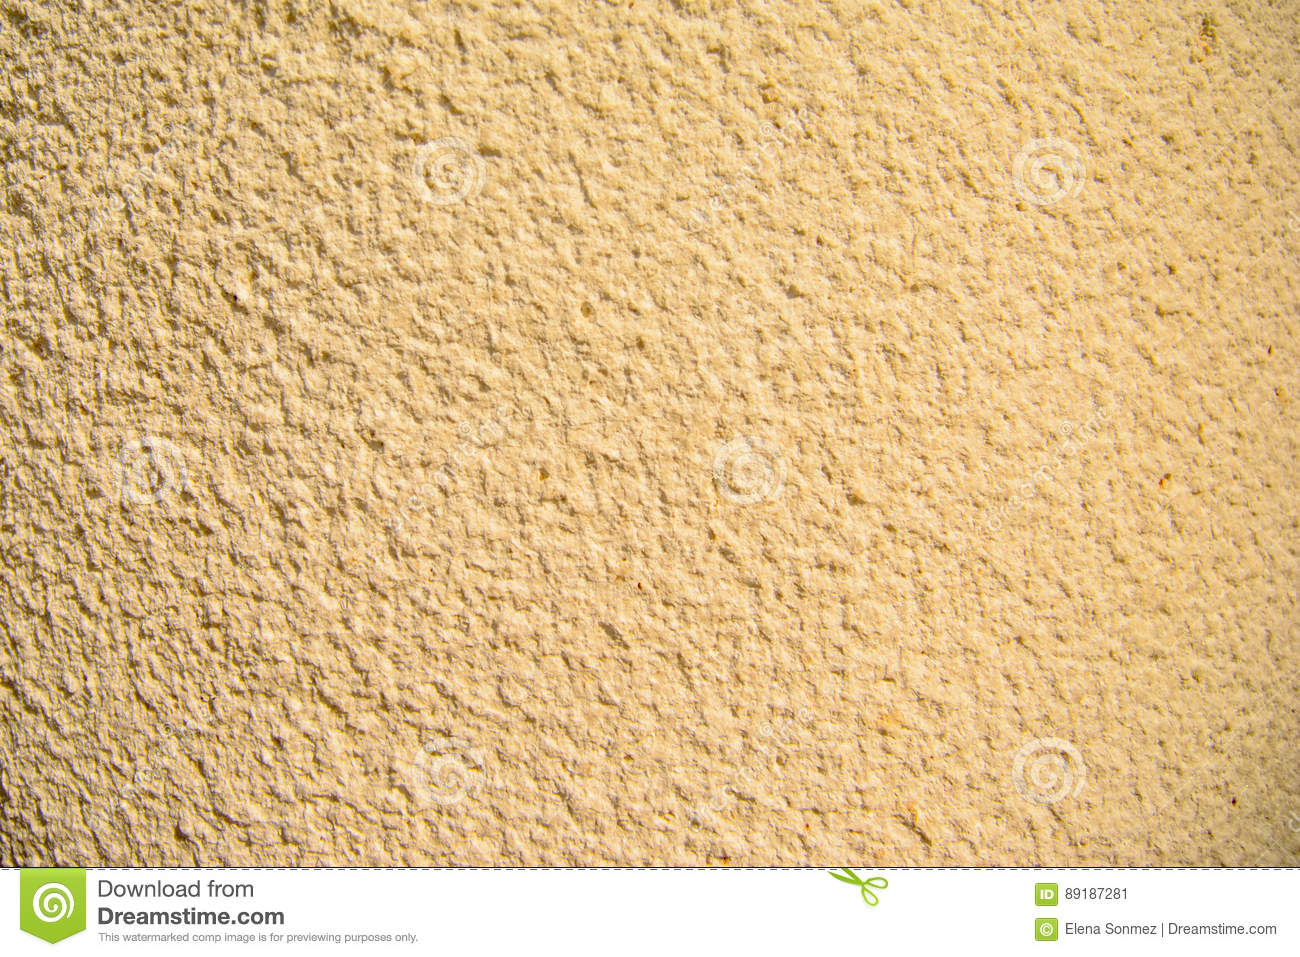 Vintage and grunge gold, cream or beige background of natural cement or stone old texture , retro pattern wall